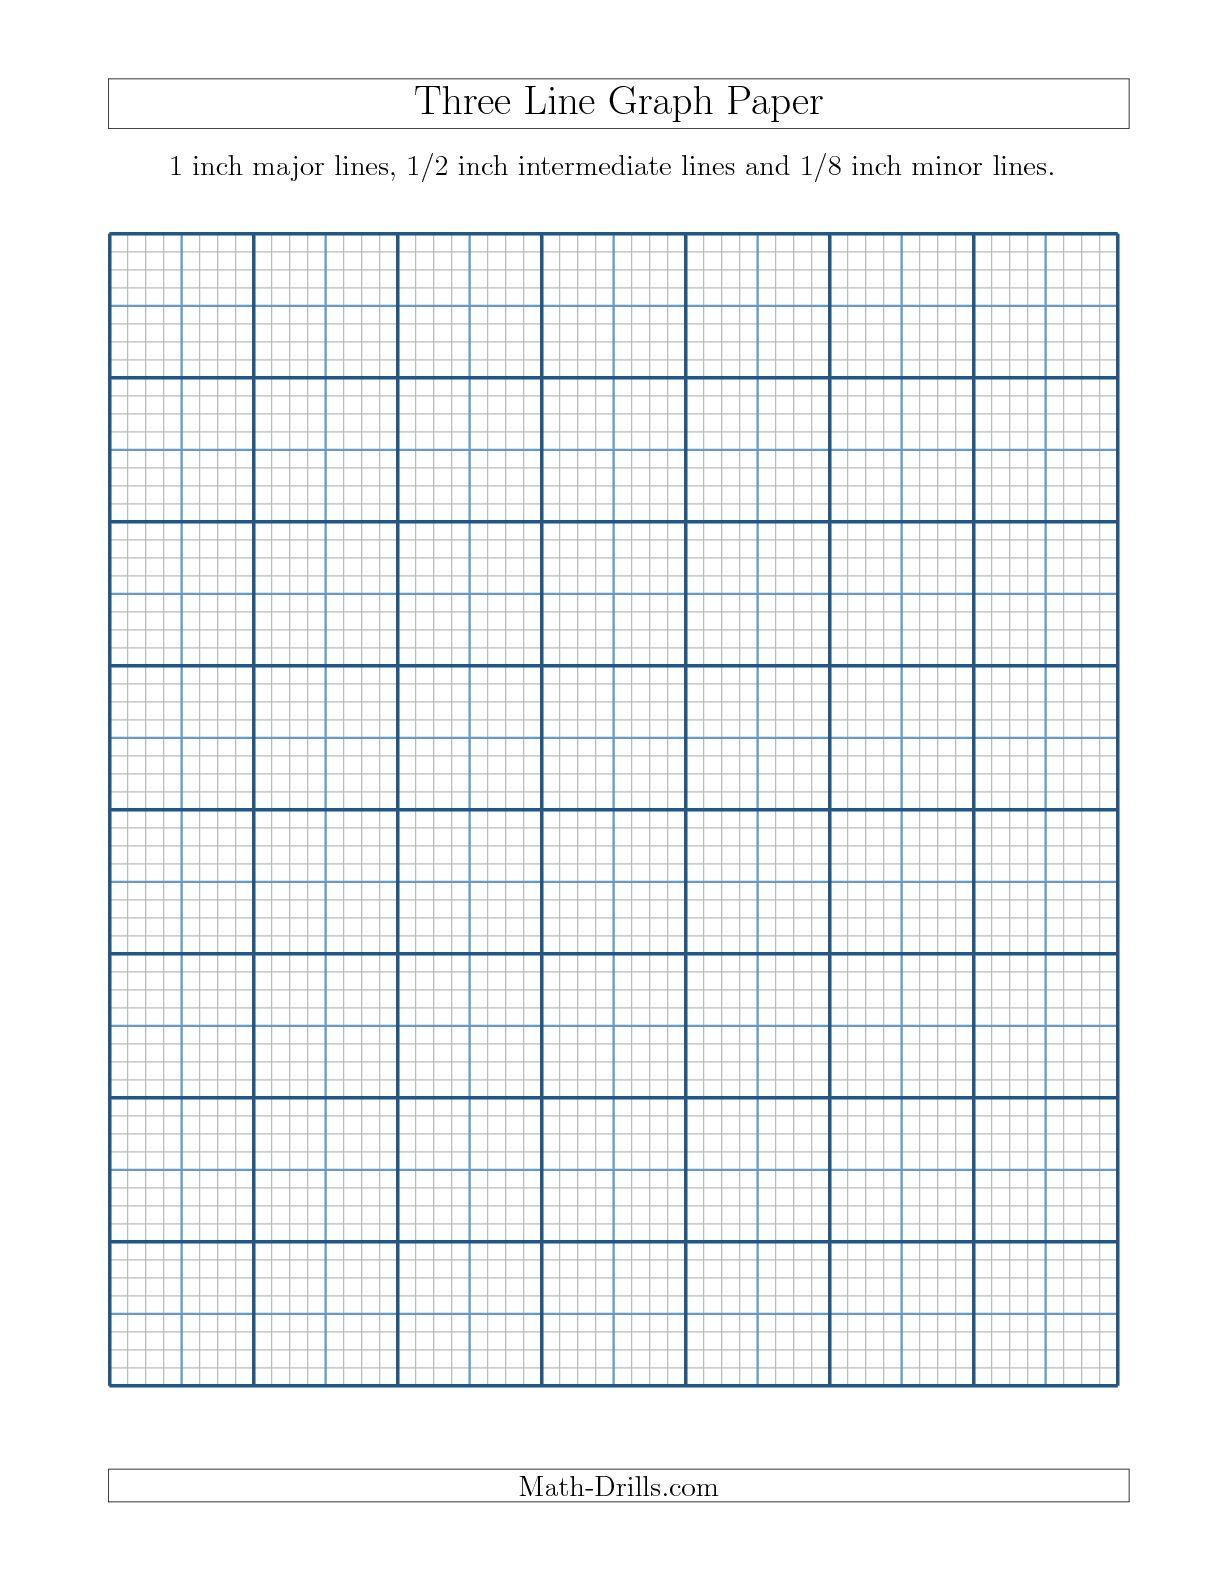 The Three Line Graph Paper With 1 Inch Major Lines 1 2